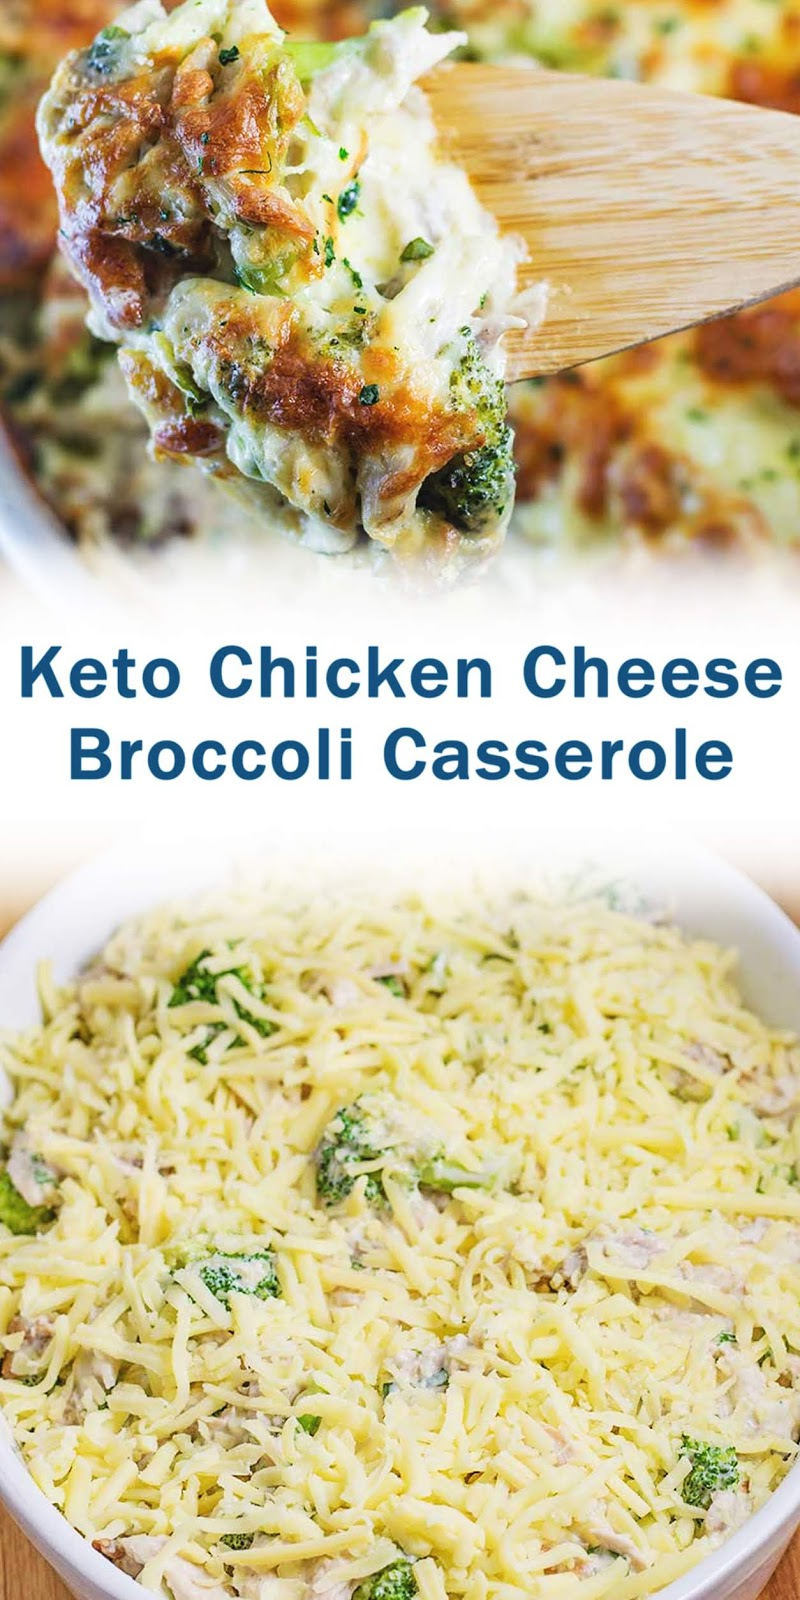 Keto Chicken Broccoli Cheese Casserole